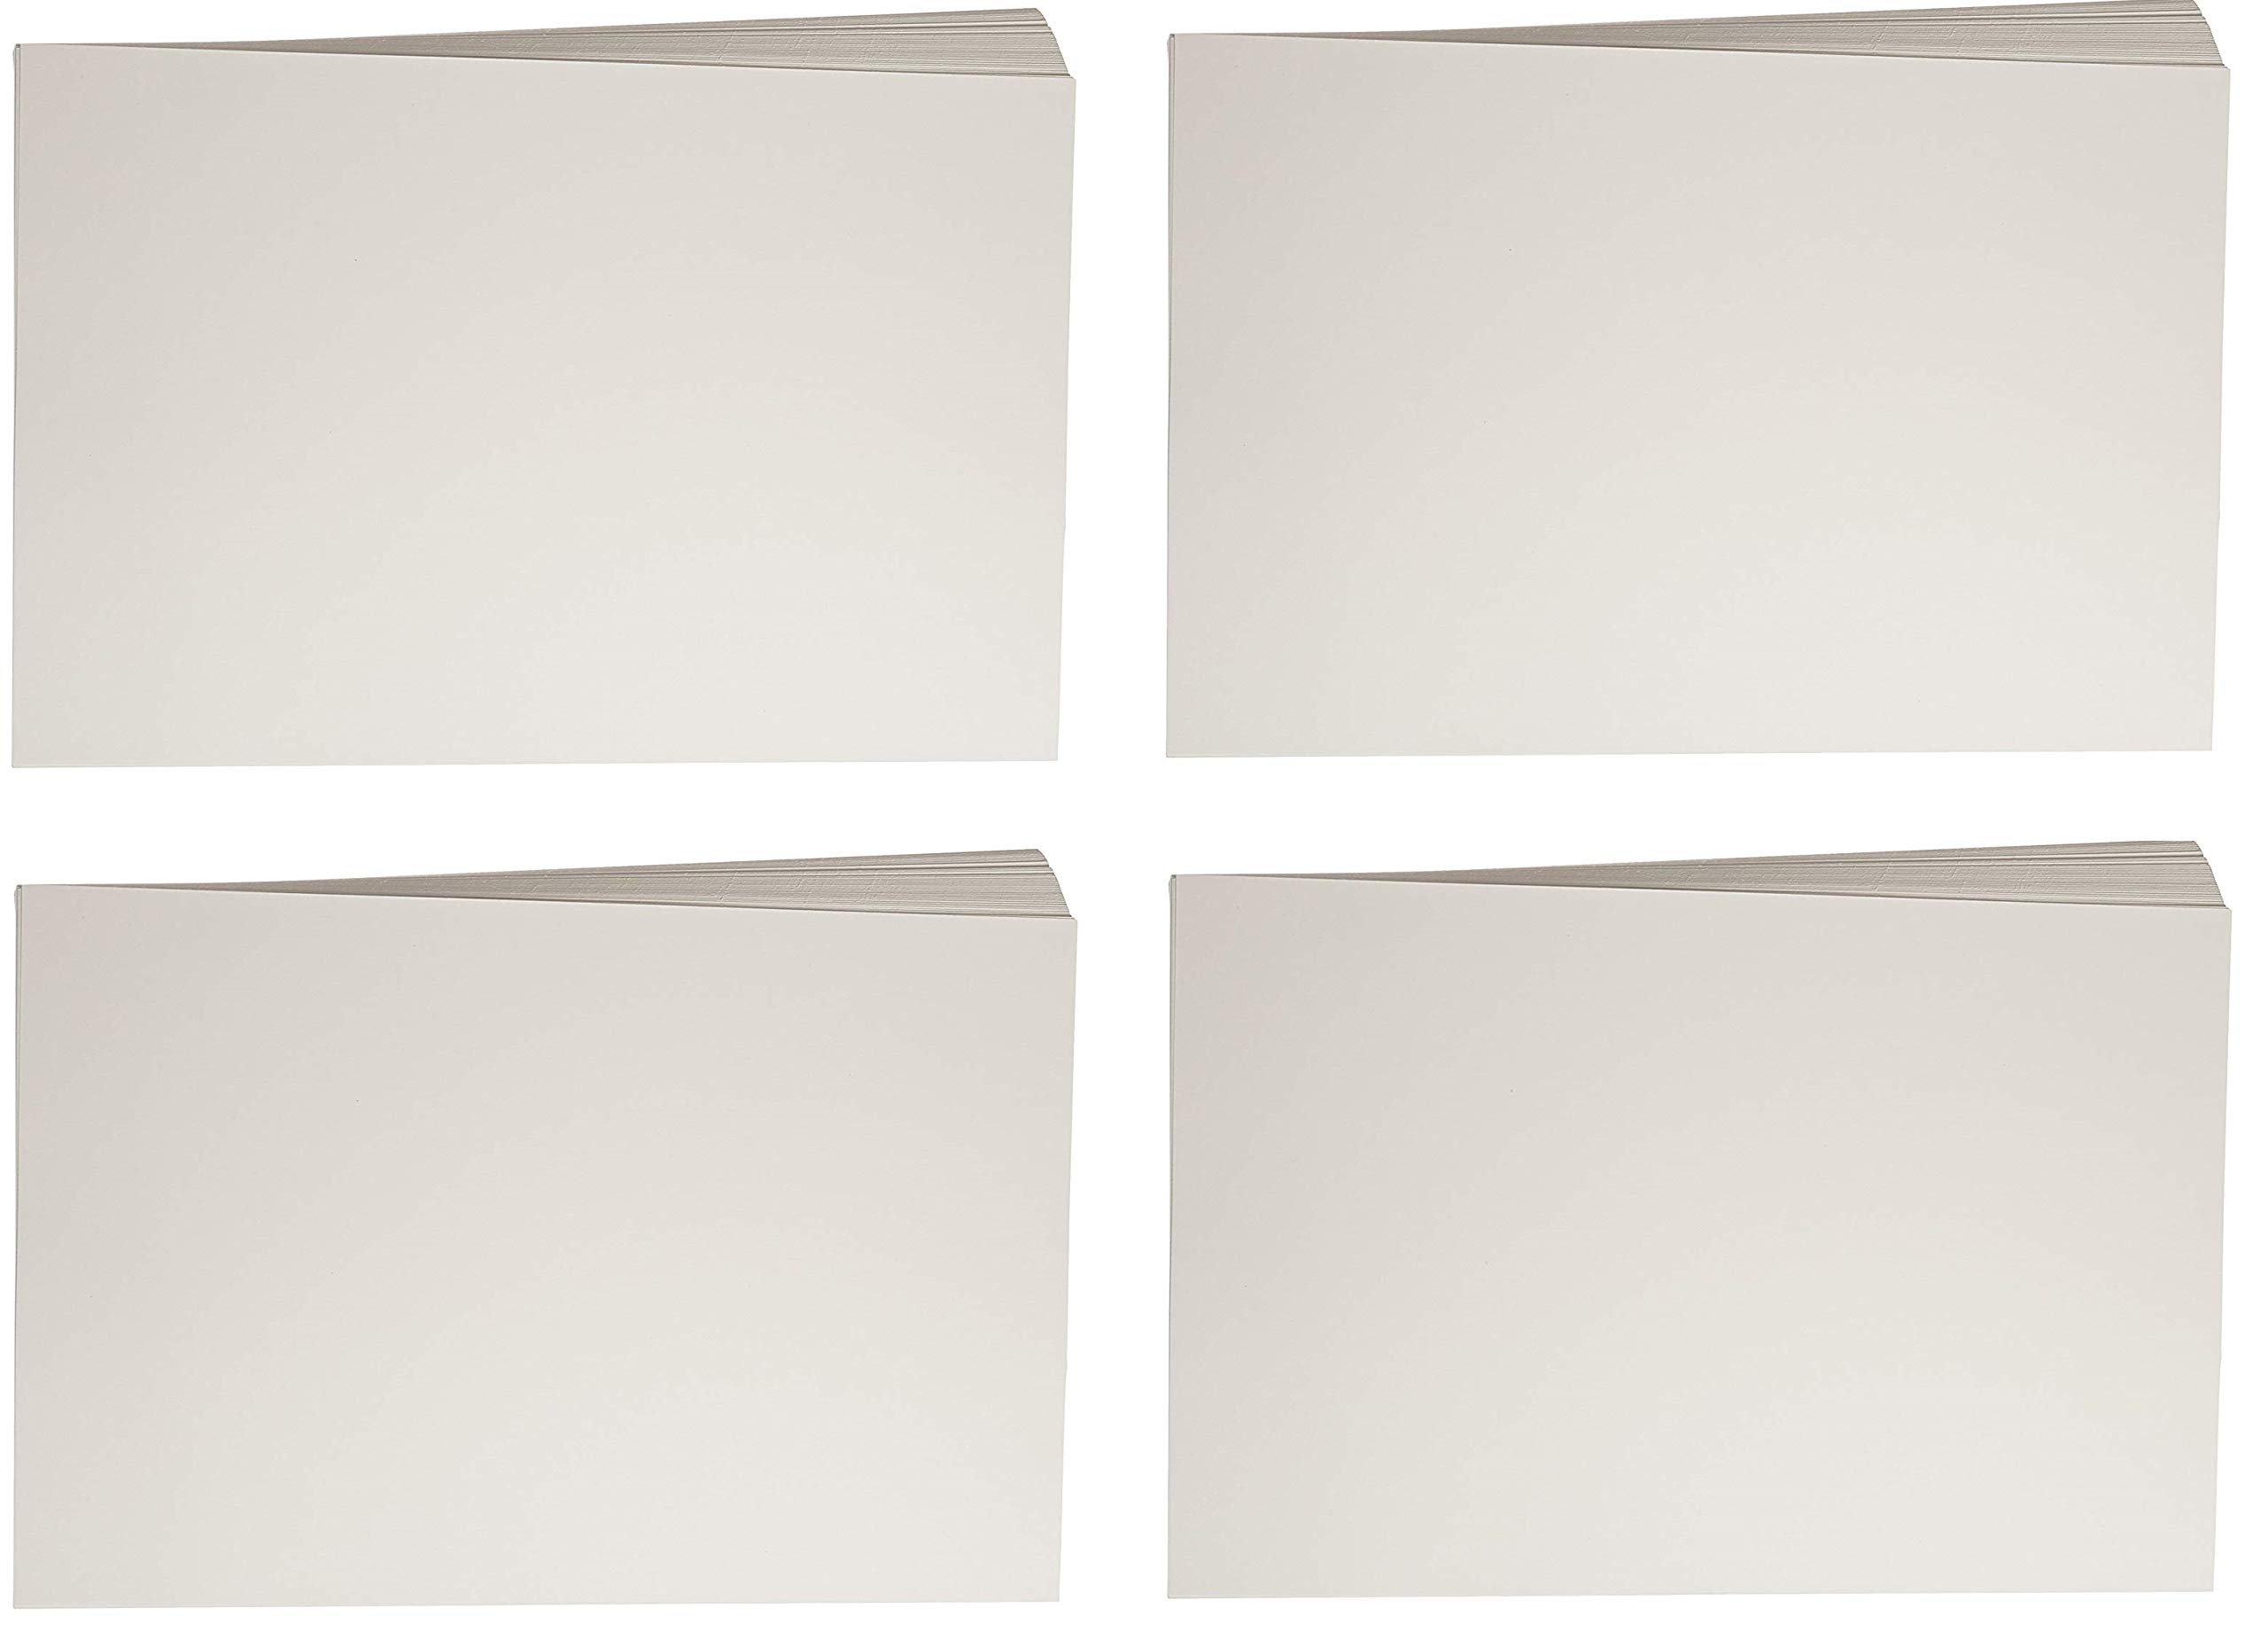 Sax Beginner Watercolor Paper, 12 x 18 Inches, 90 lb, Natural White, 100 Sheets (4 X 100 Sheets)